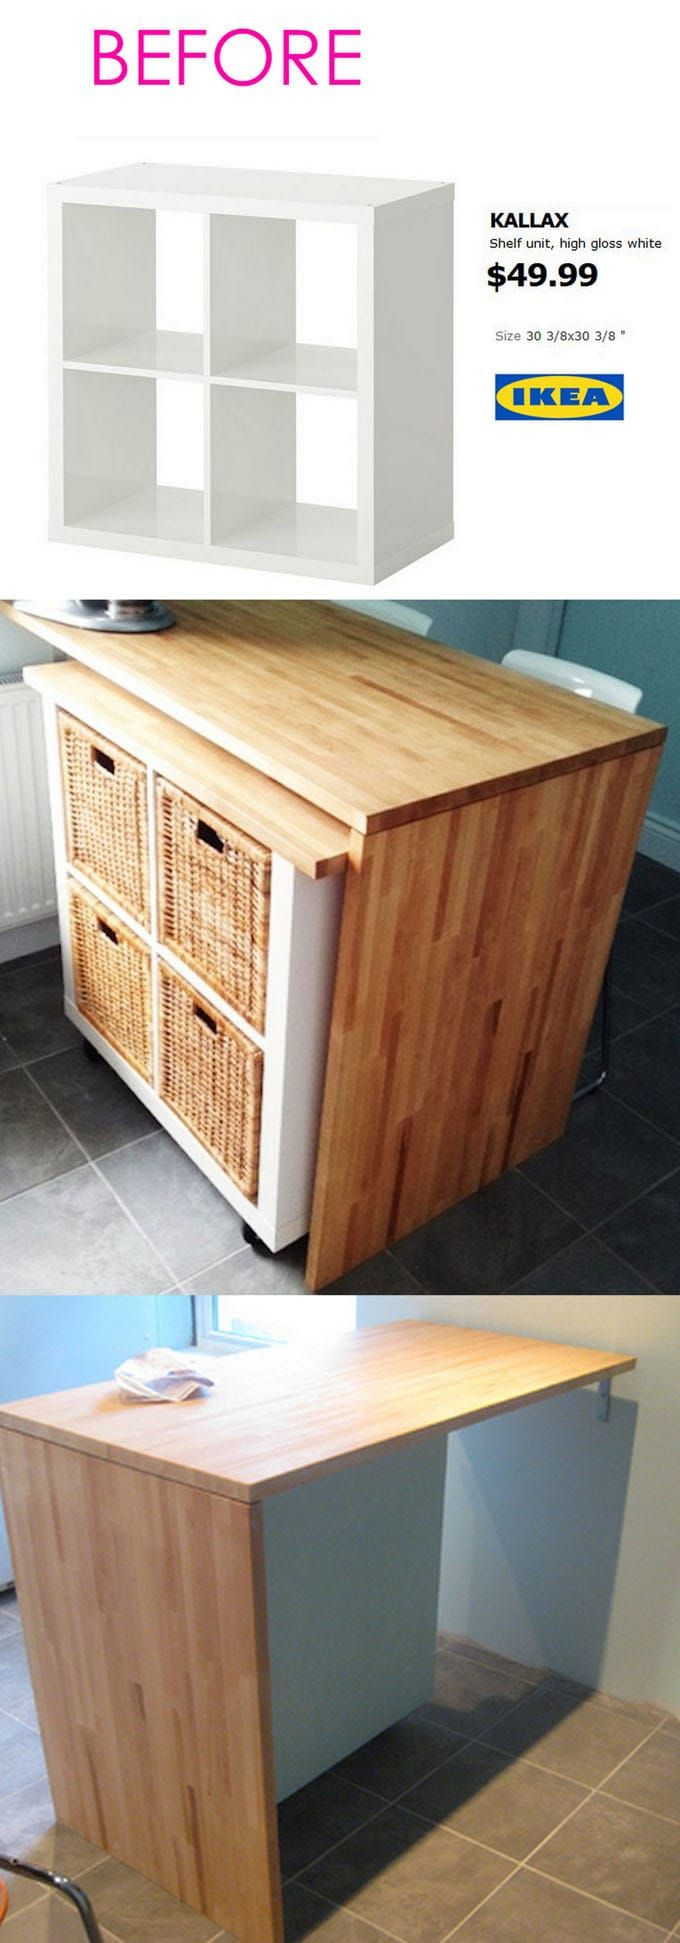 20+ Smart and Gorgeous IKEA Hacks: save time and money with functional designs and beautiful transformations. Great ideas for every room such as IKEA hack bed, desk, dressers, kitchen islands, and more! - A Piece of Rainbow #ikea #ikeahack #kitchenisland #kitchen #diy #furniture #woodworkingprojects #woodworkingplans #apieceofrainbow #diy #homedecor #hacks #kitchenideas #farmhouse #farmhousedecor #organizing #organization #organize #storage #declutter